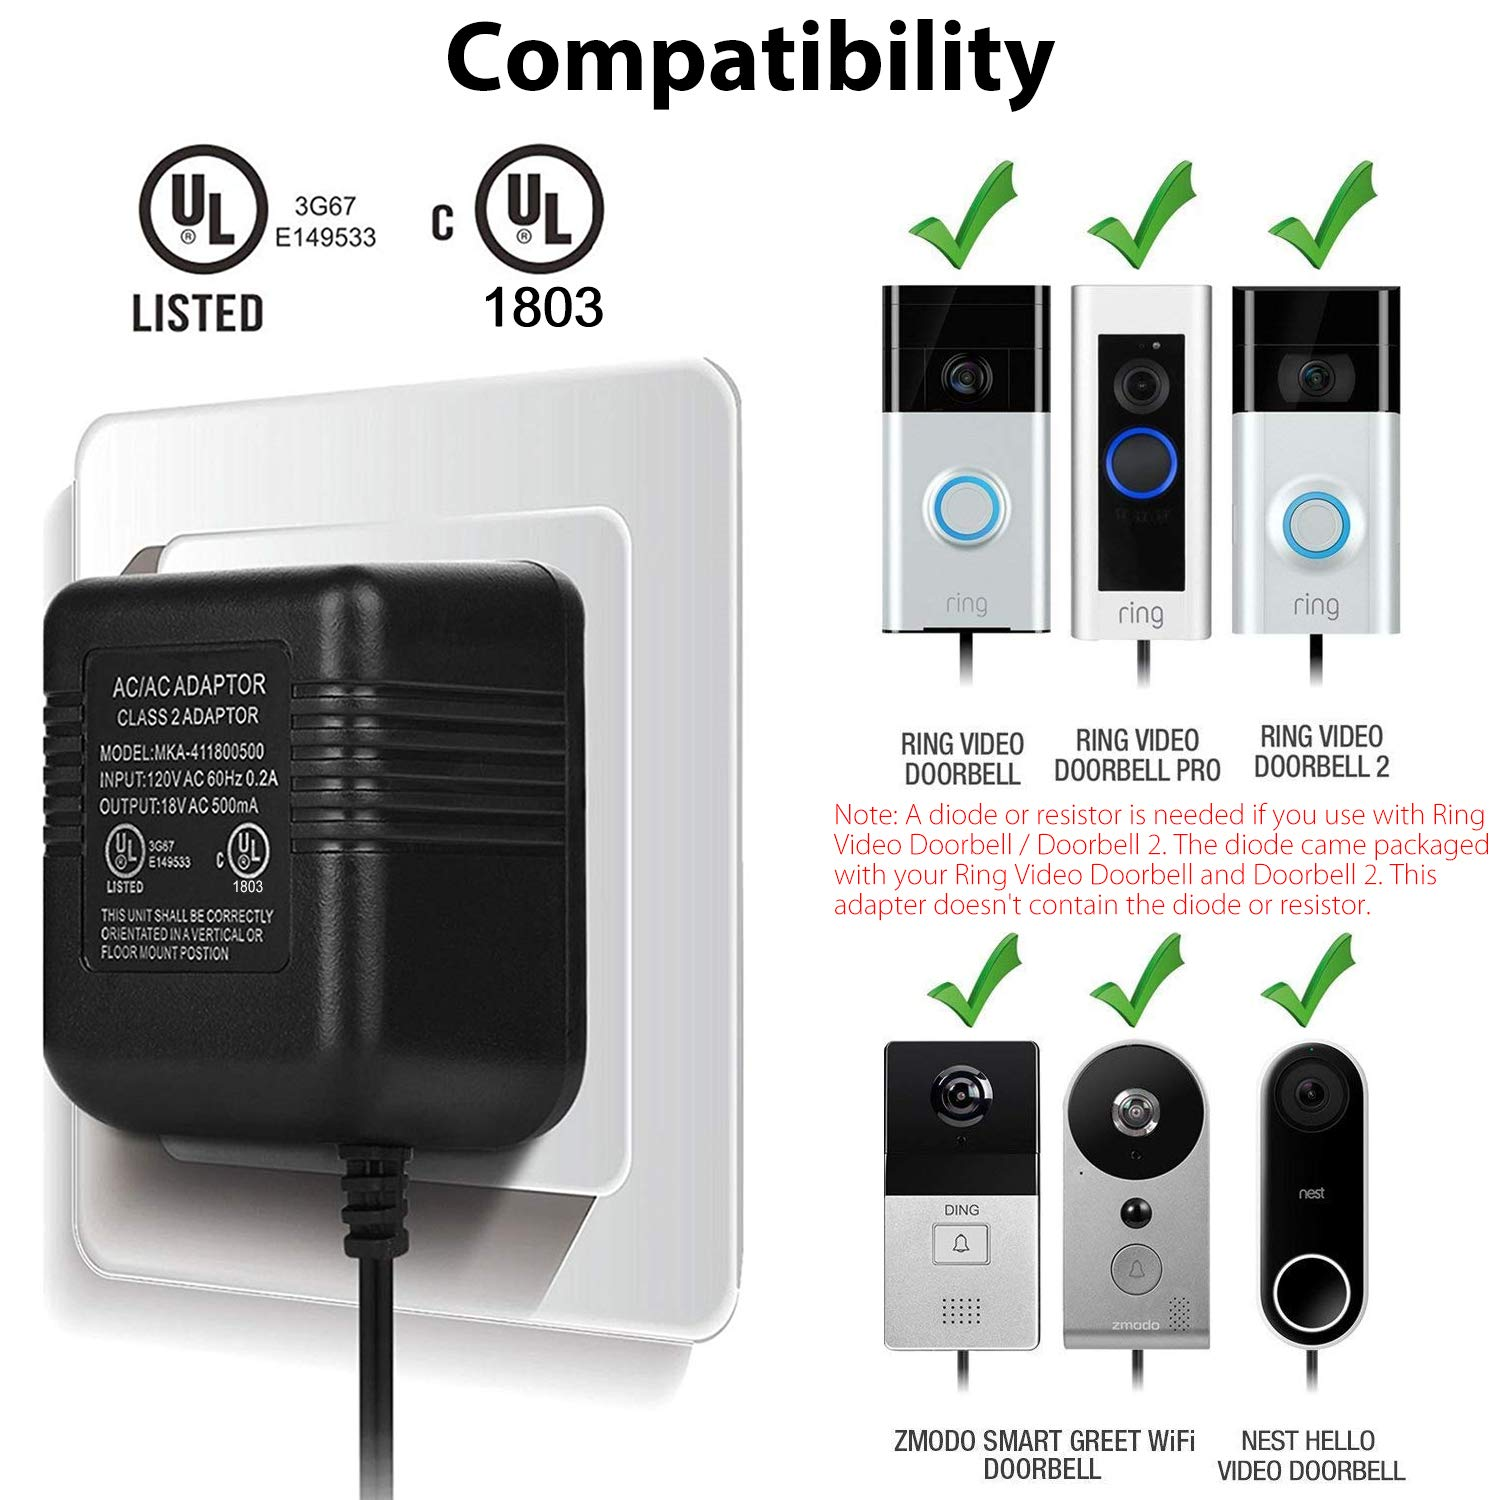 Sunjoyco Power Supply Adapter for Ring Video Doorbell, Ring Doorbell 2,  Ring Doorbell Pro, Nest Hello Doorbell Charging Adapter Transformer with  20FT